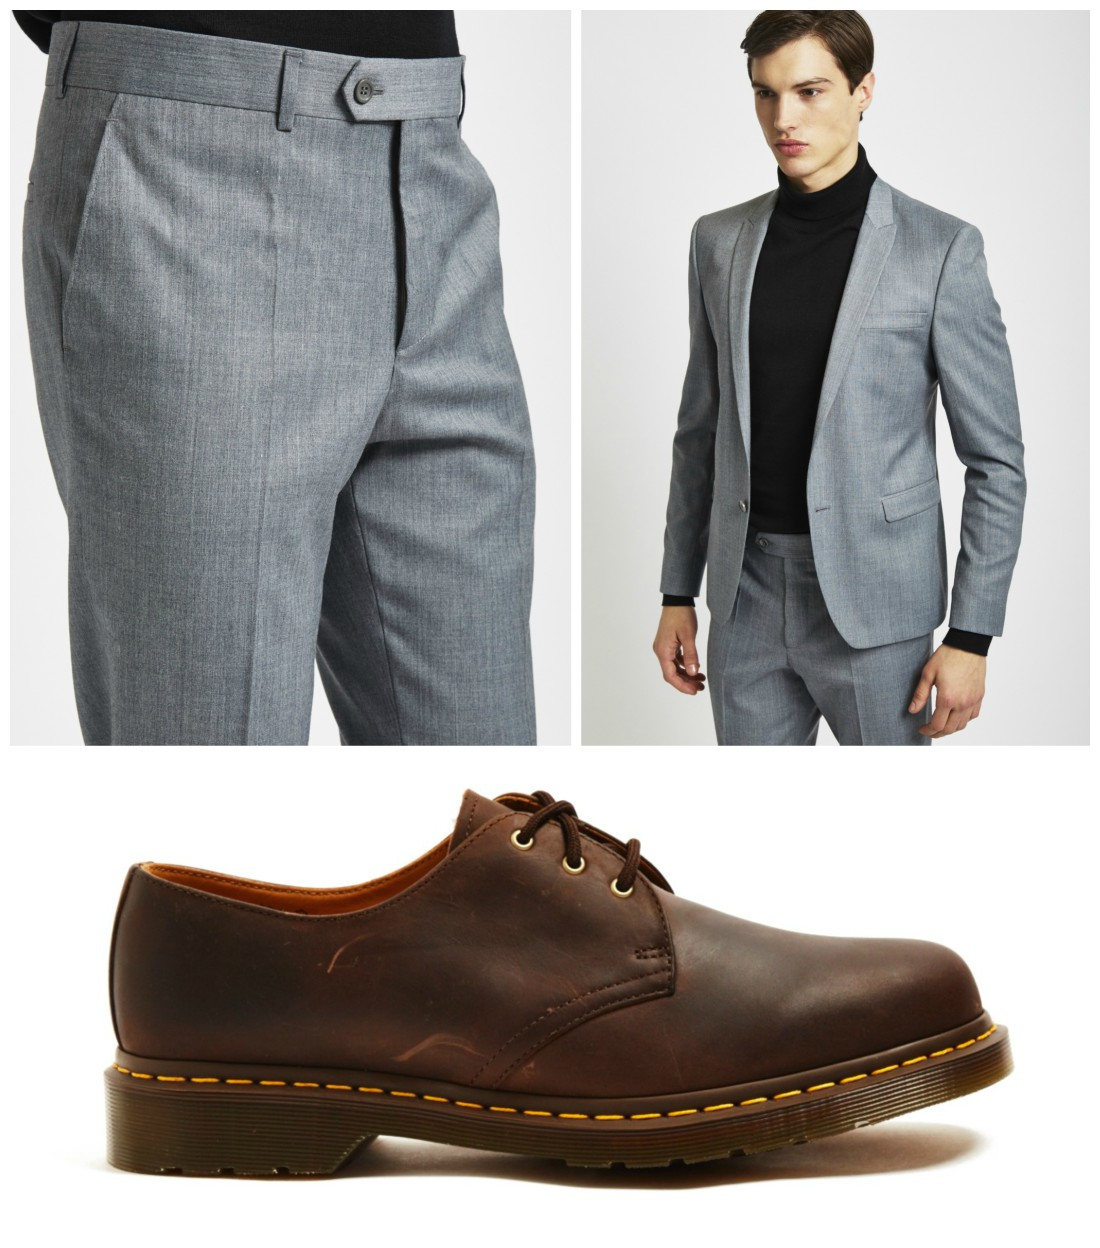 Combinations of gray and brown look sophisticated and understated, and gray and black together also look sophisticated. Gray pants can even be worn well with a simple white t-shirt or white dress shirt, depending on the style of pants. Several shades of gray can also be worn successfully together to create a calming, monochromatic statement.